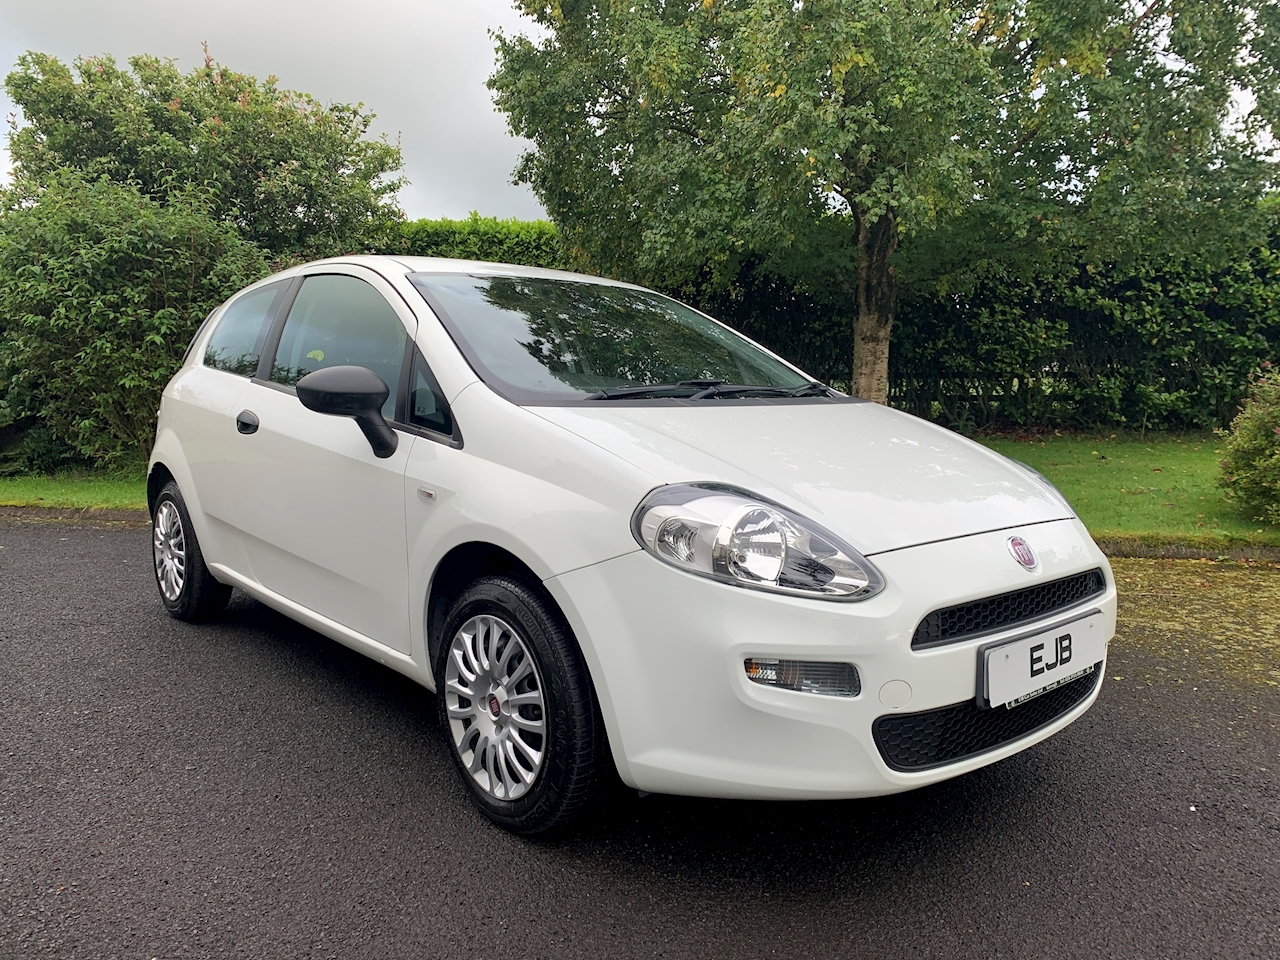 Fiat Punto Pop Hatchback 1.2 Manual Petrol